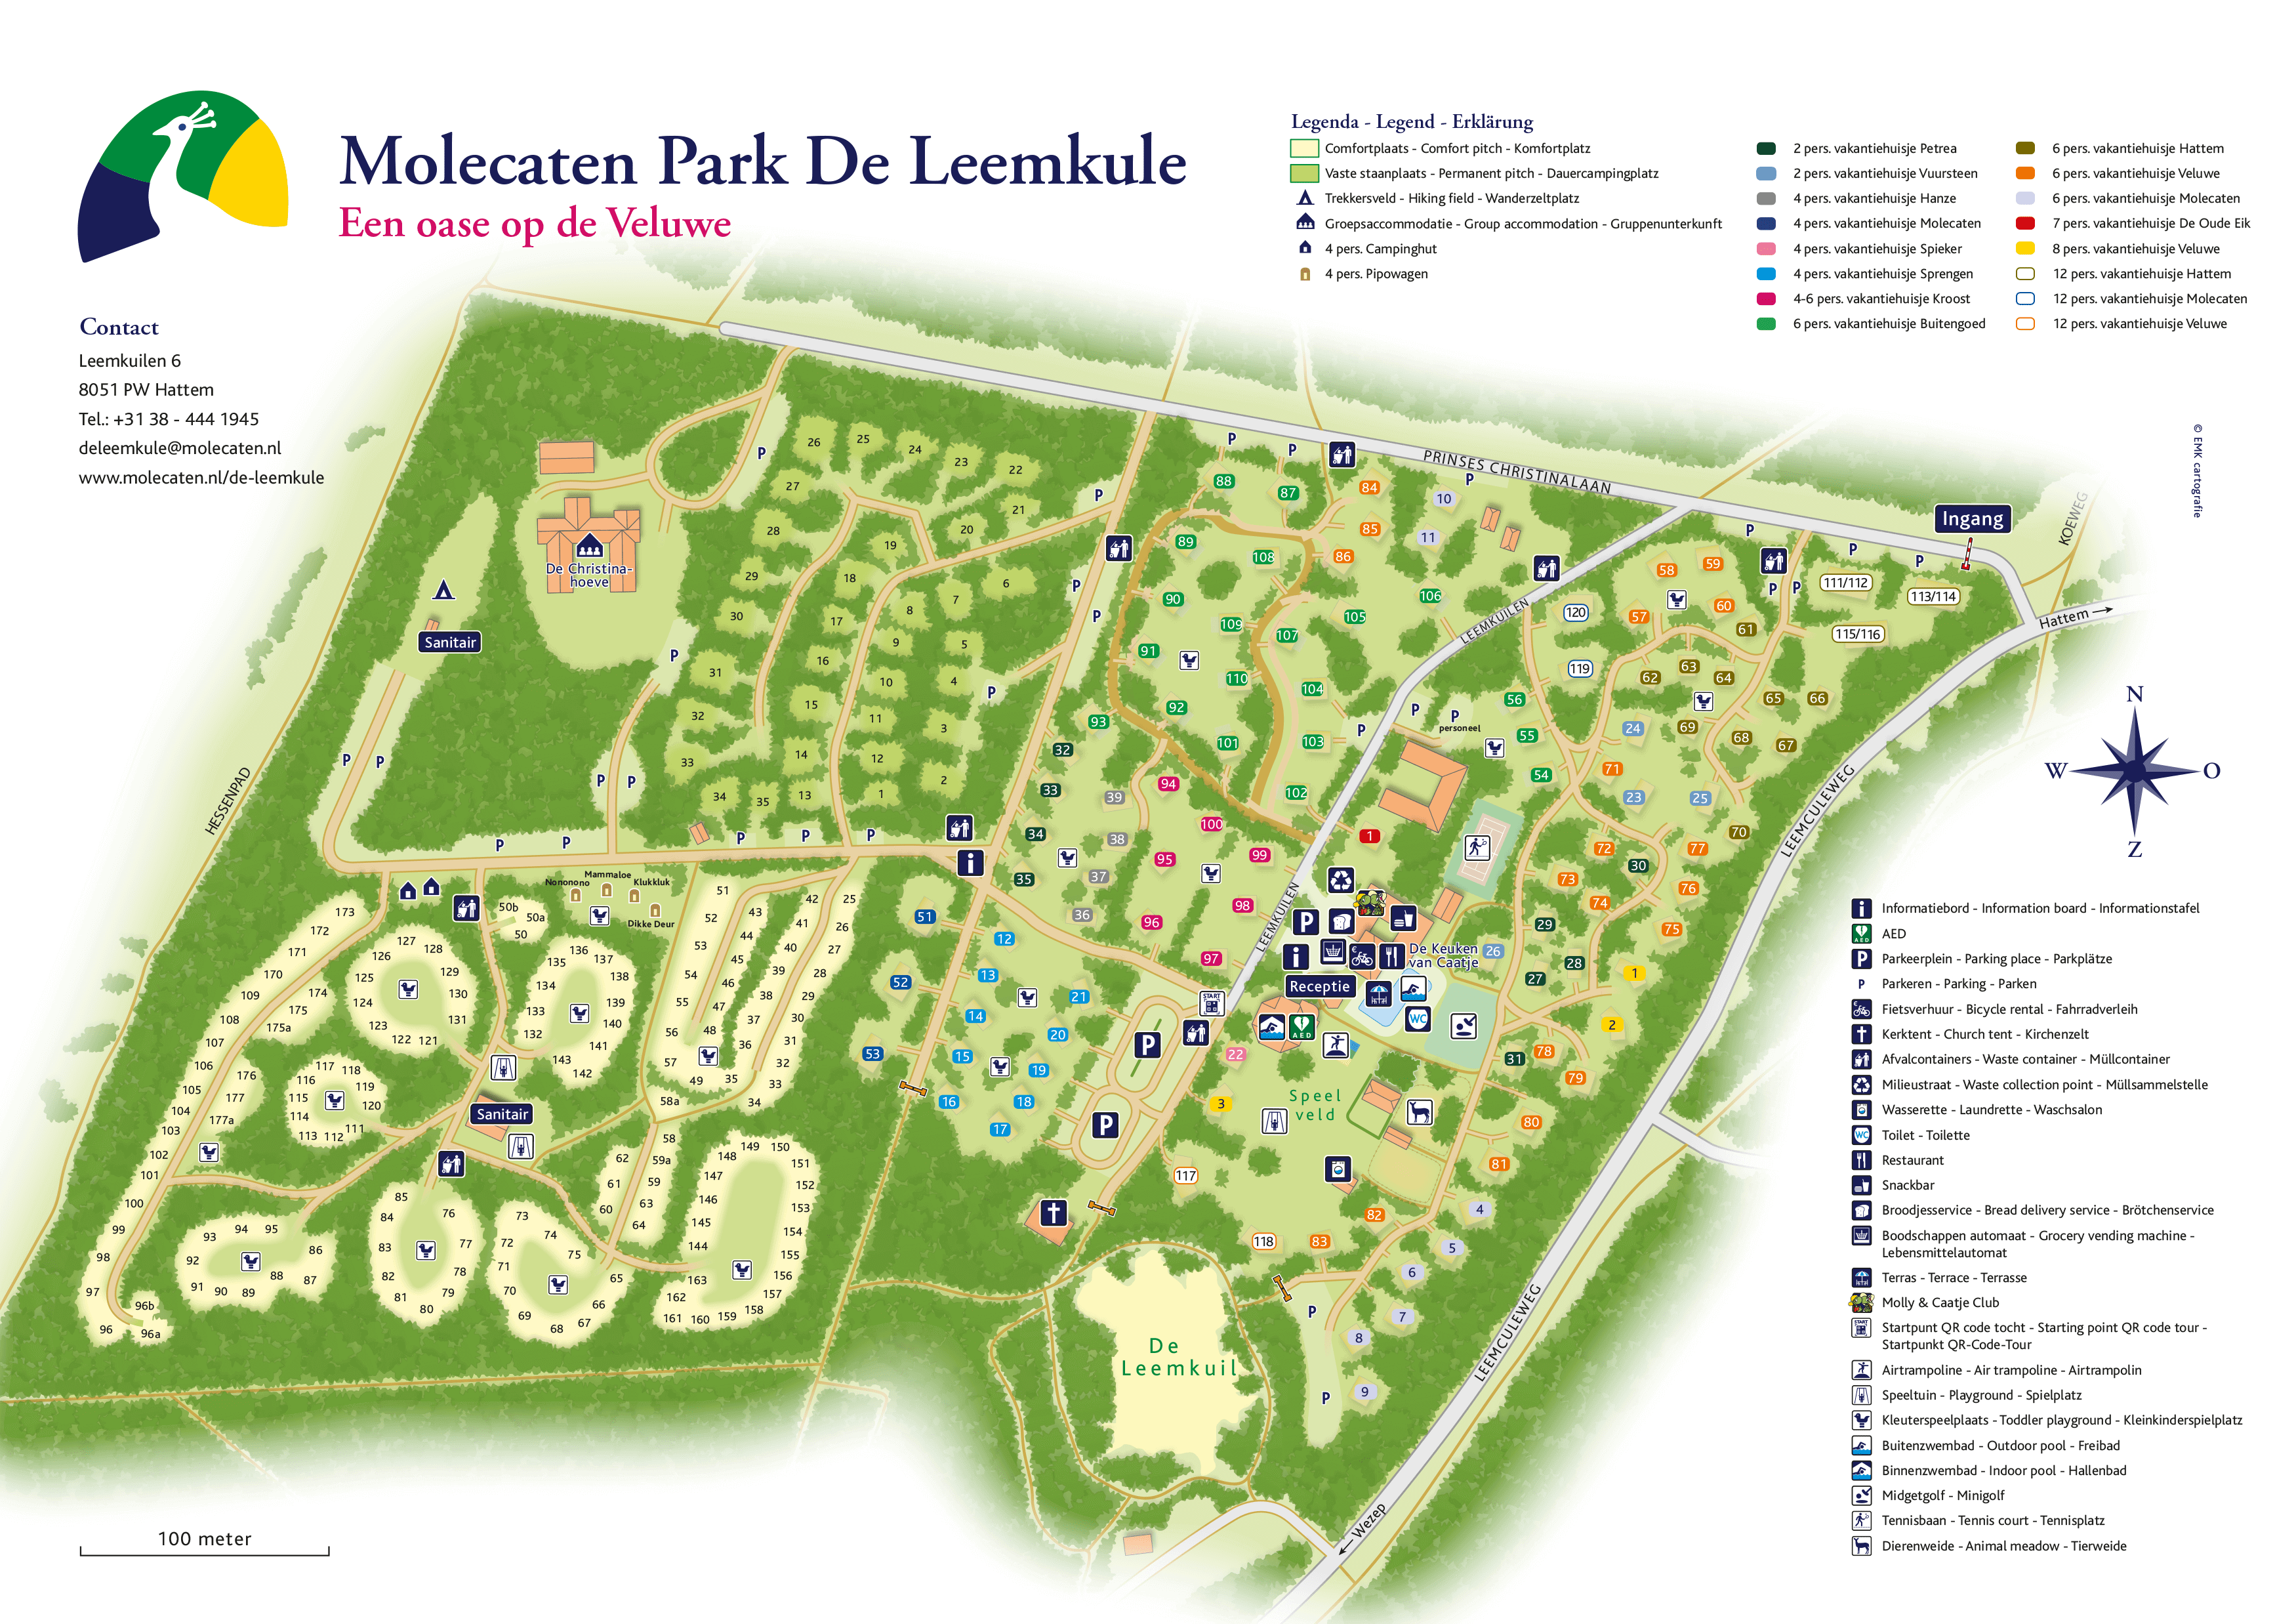 Molecaten Park De Leemkule accommodation.parkmap.alttext